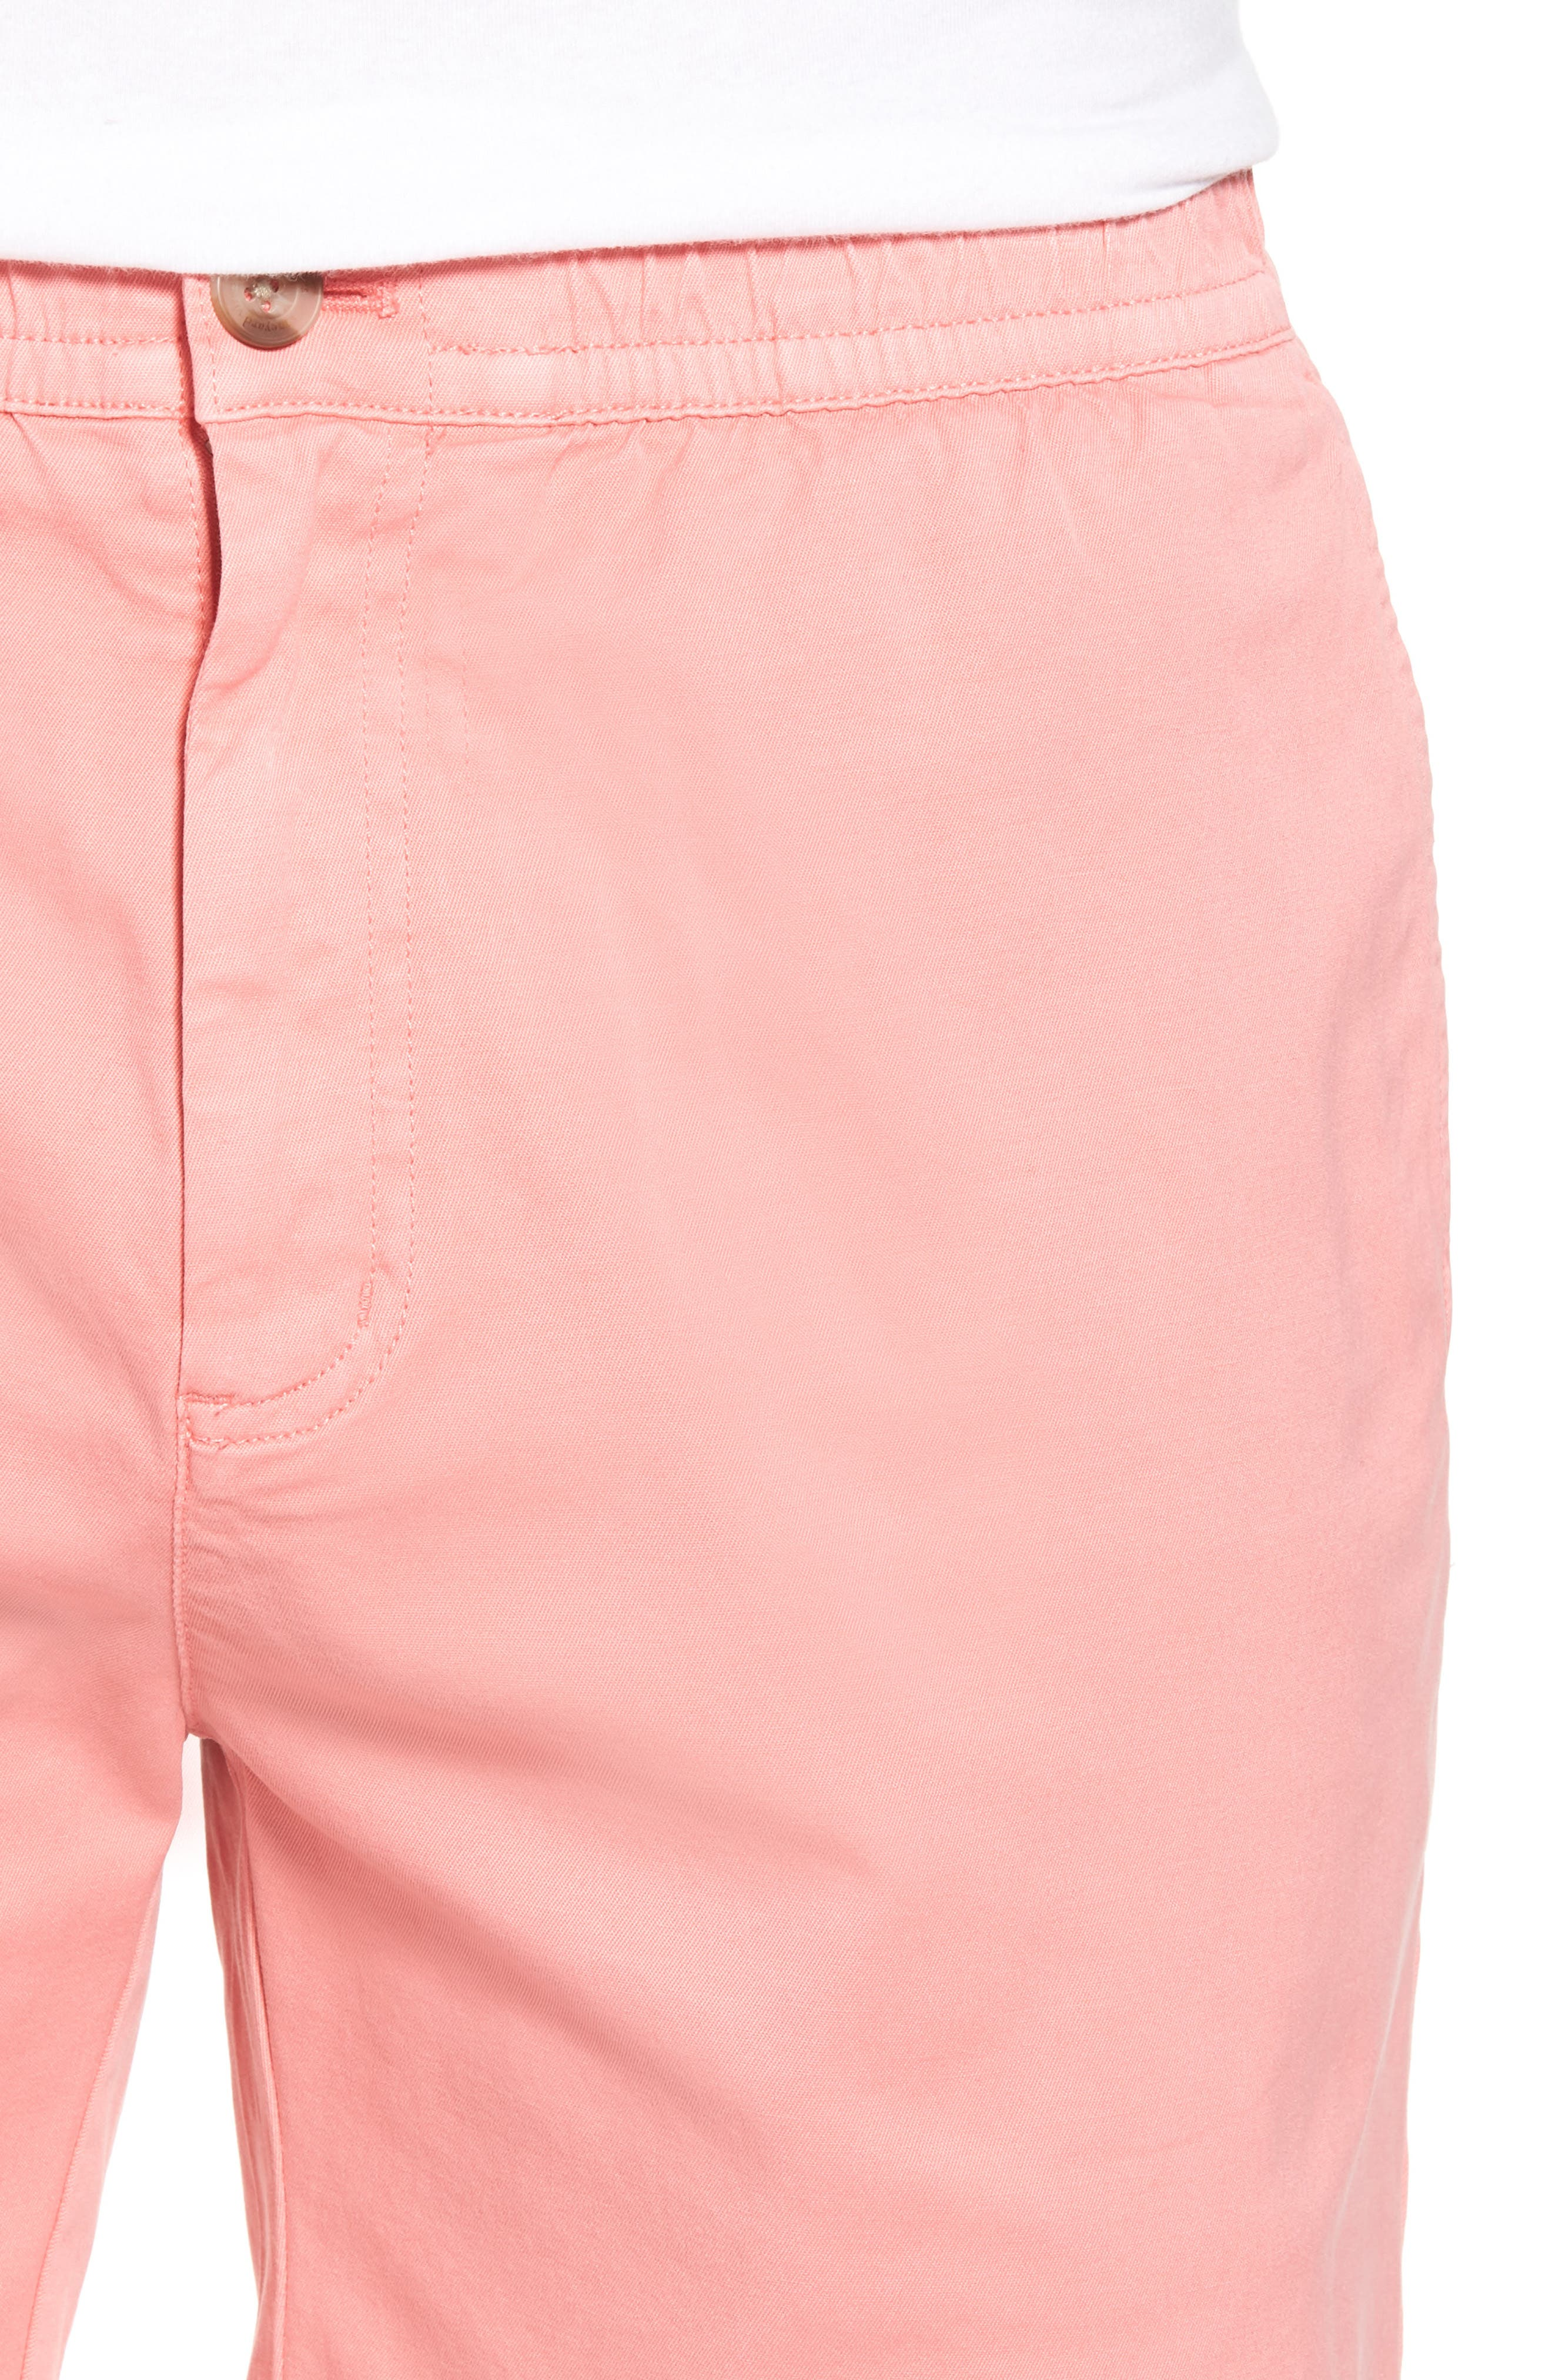 Jetty Stretch Cotton Shorts,                             Alternate thumbnail 4, color,                             Cape Coral